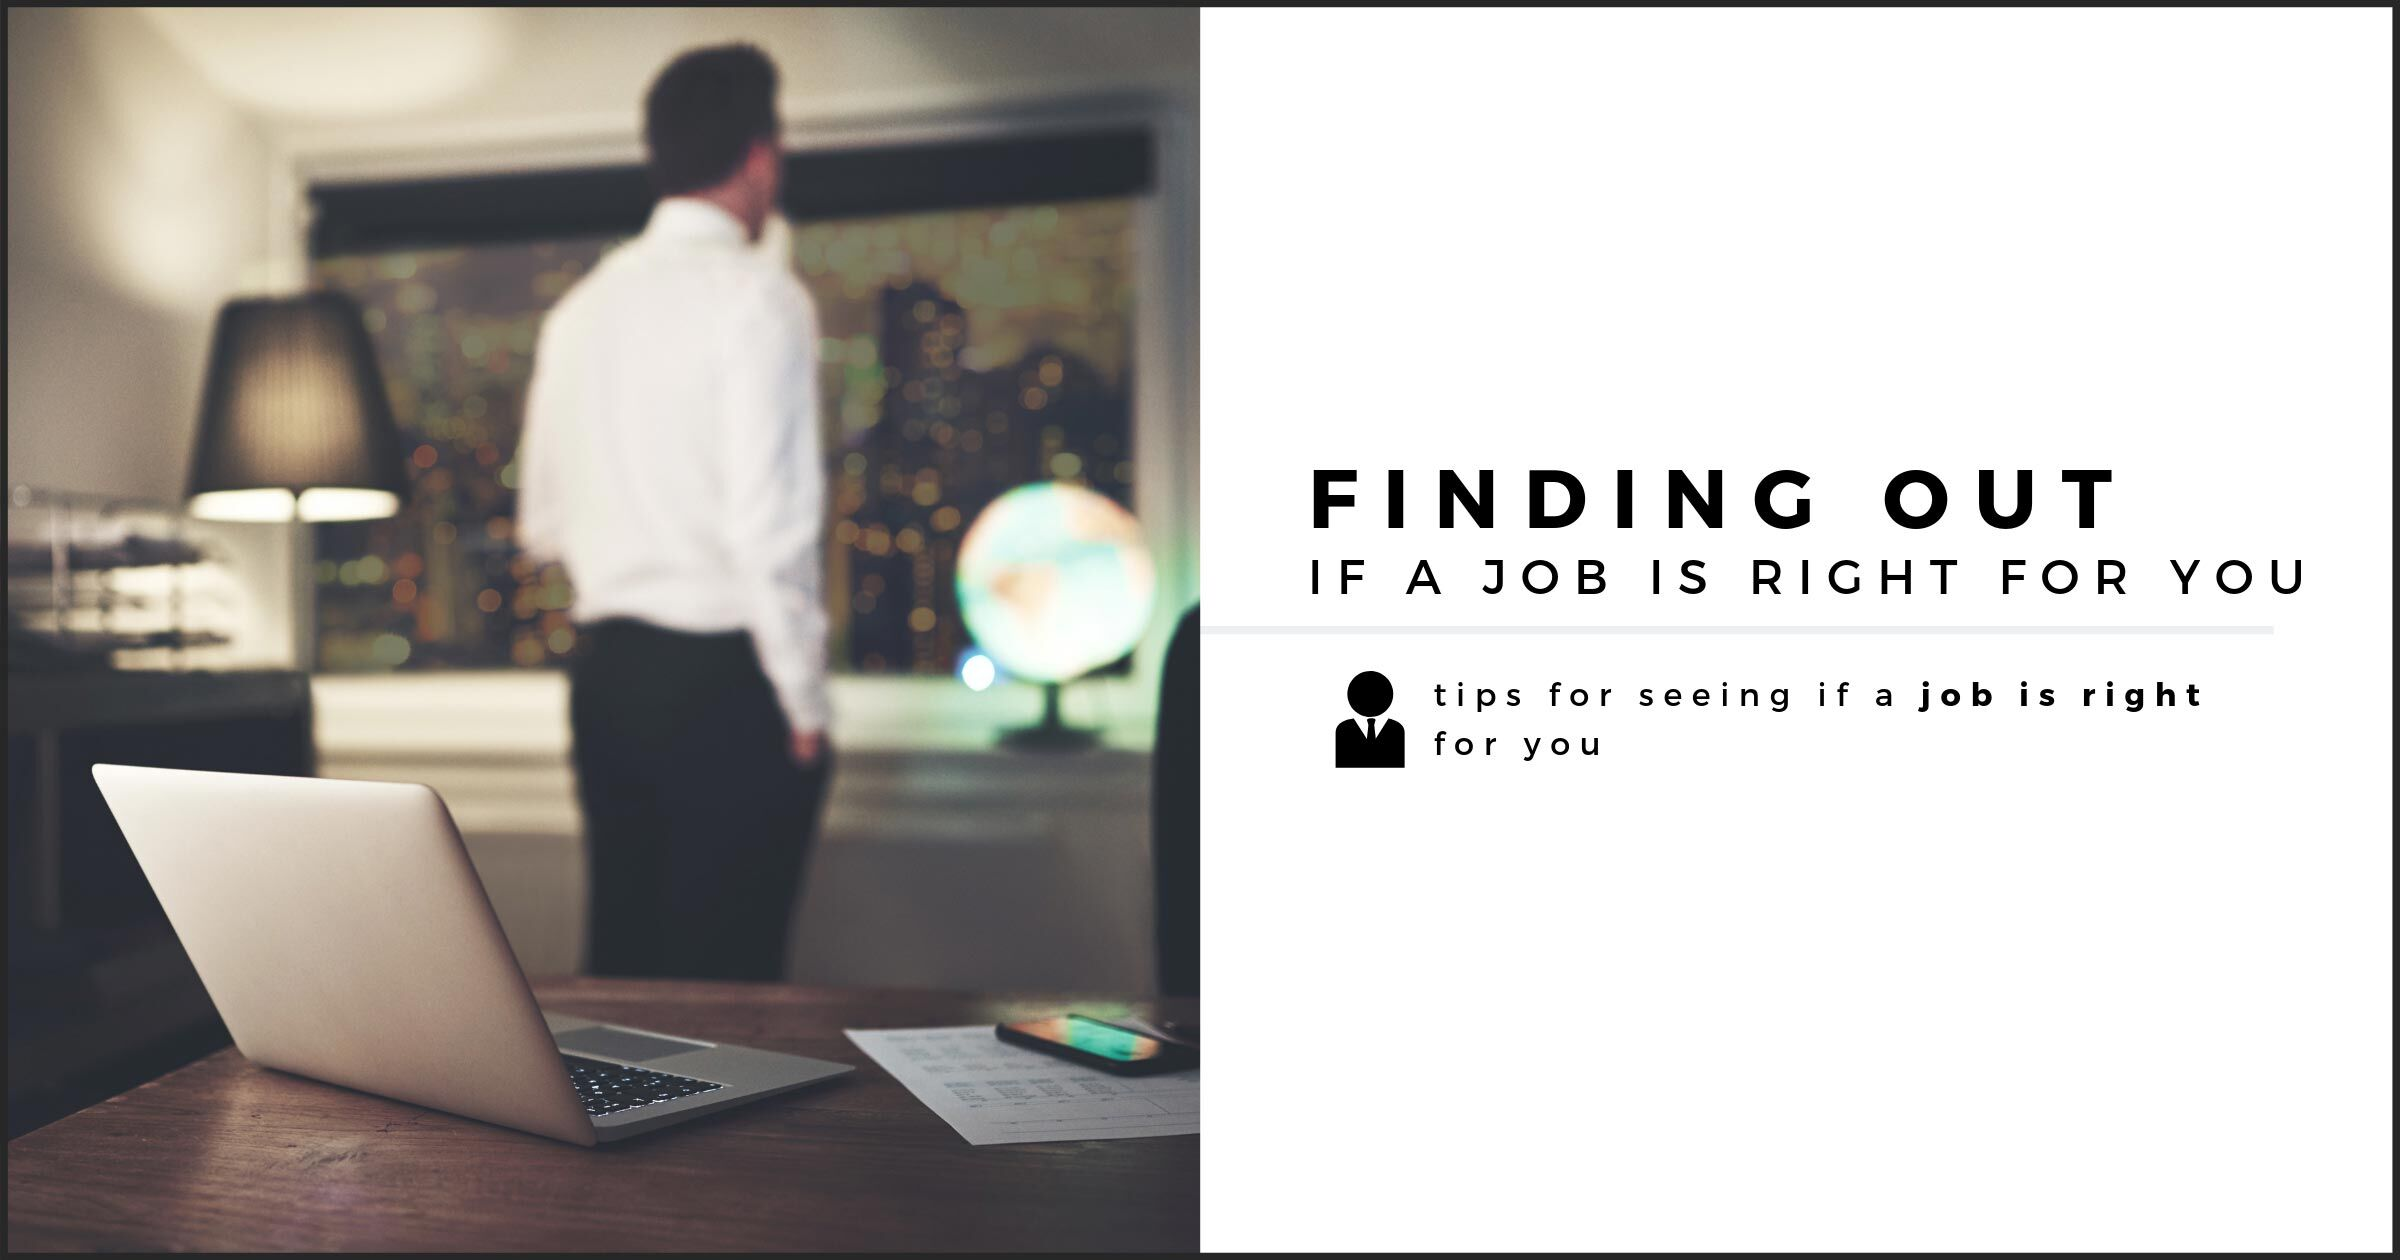 Tips for Finding Out if a Job is Right for You